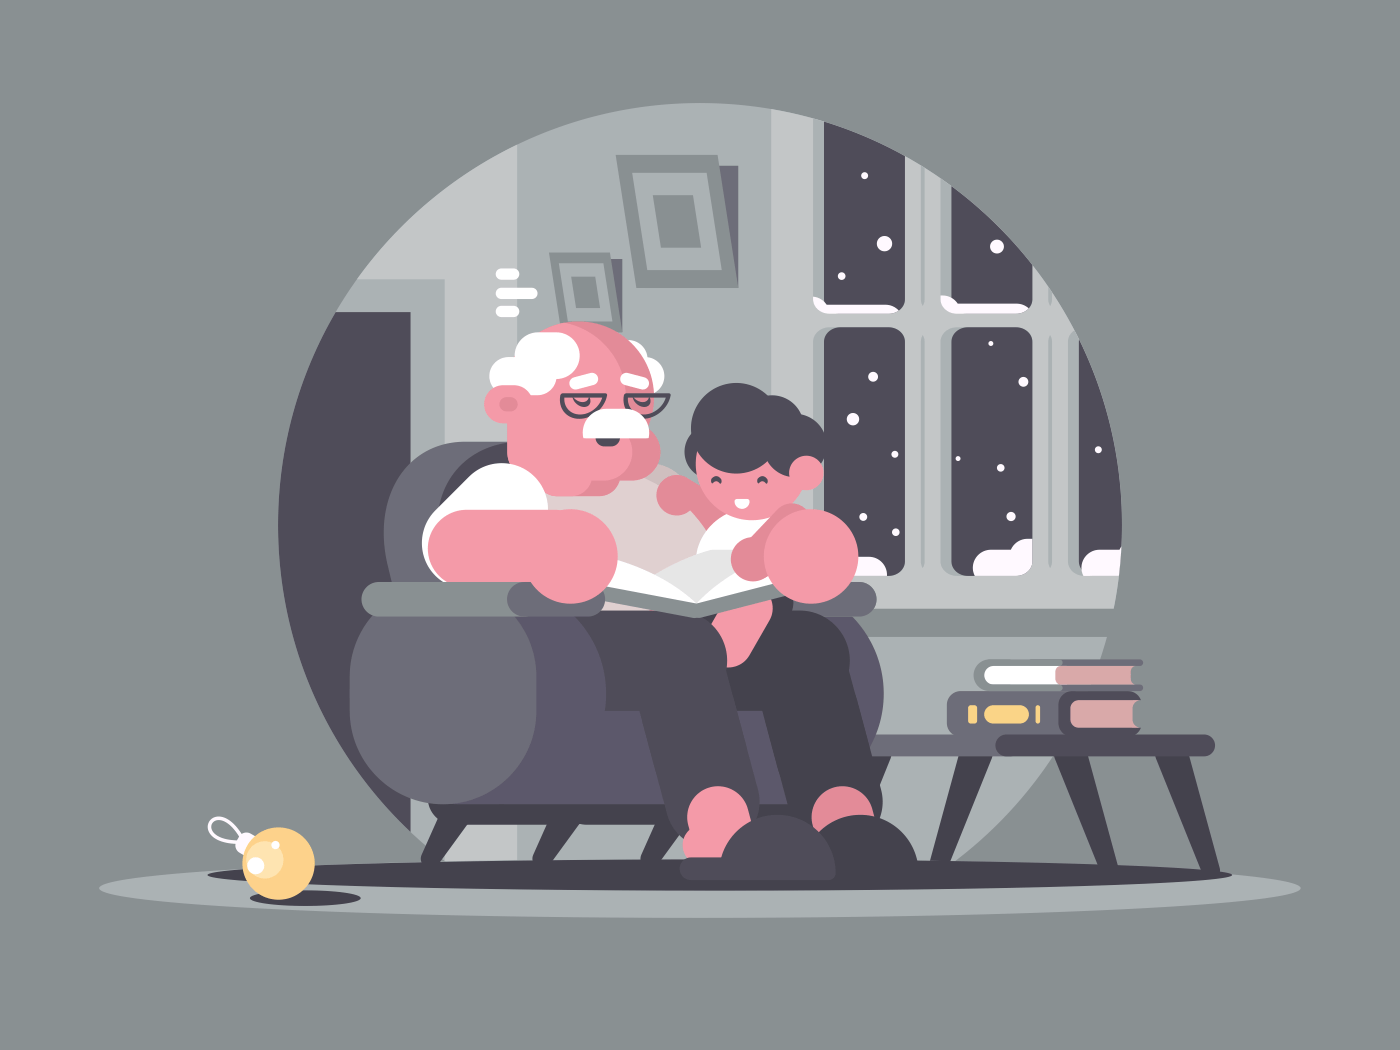 Grandfather and grandson sitting in chair and reading book. Vector illustration